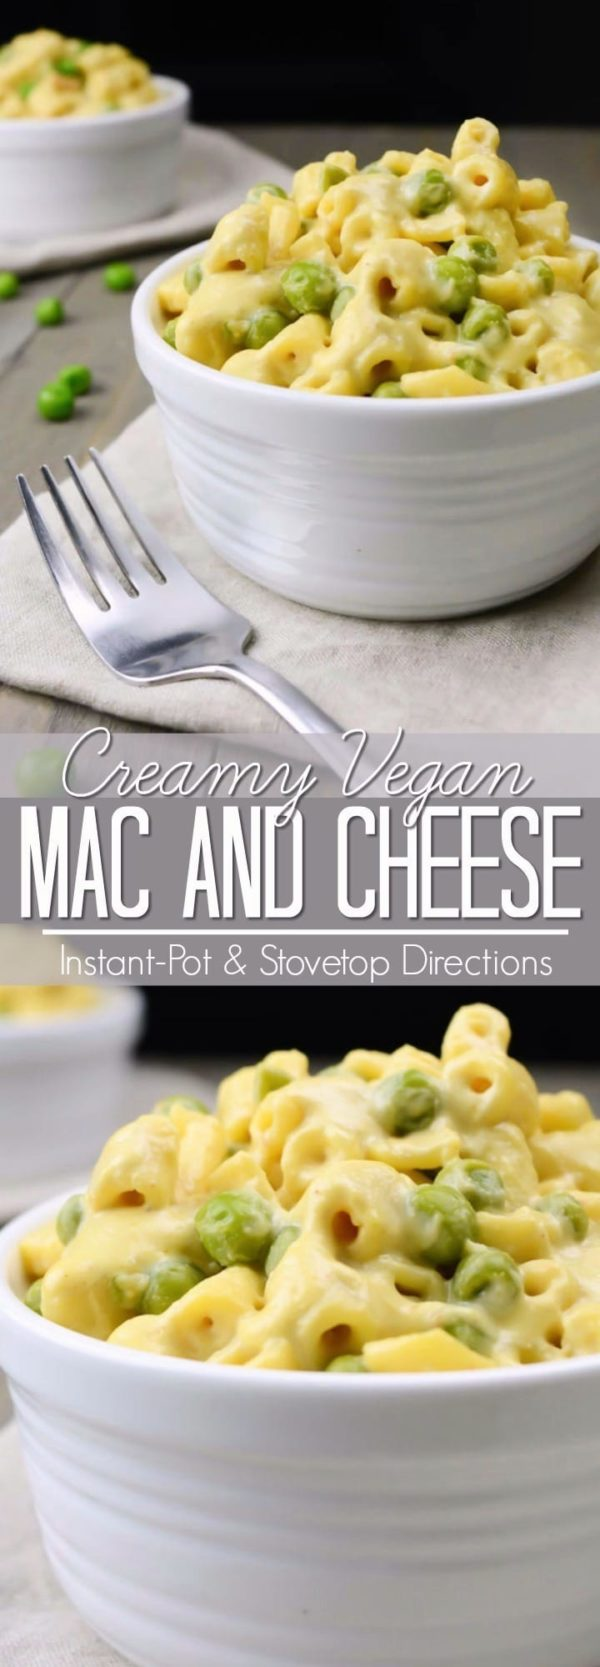 Creamy Vegan Mac and Cheese is so creamy and cheesy! It's the perfect dairy-free alternative to a classic comfort food. This one-pot recipe can be made stovetop or in the Instant-Pot.